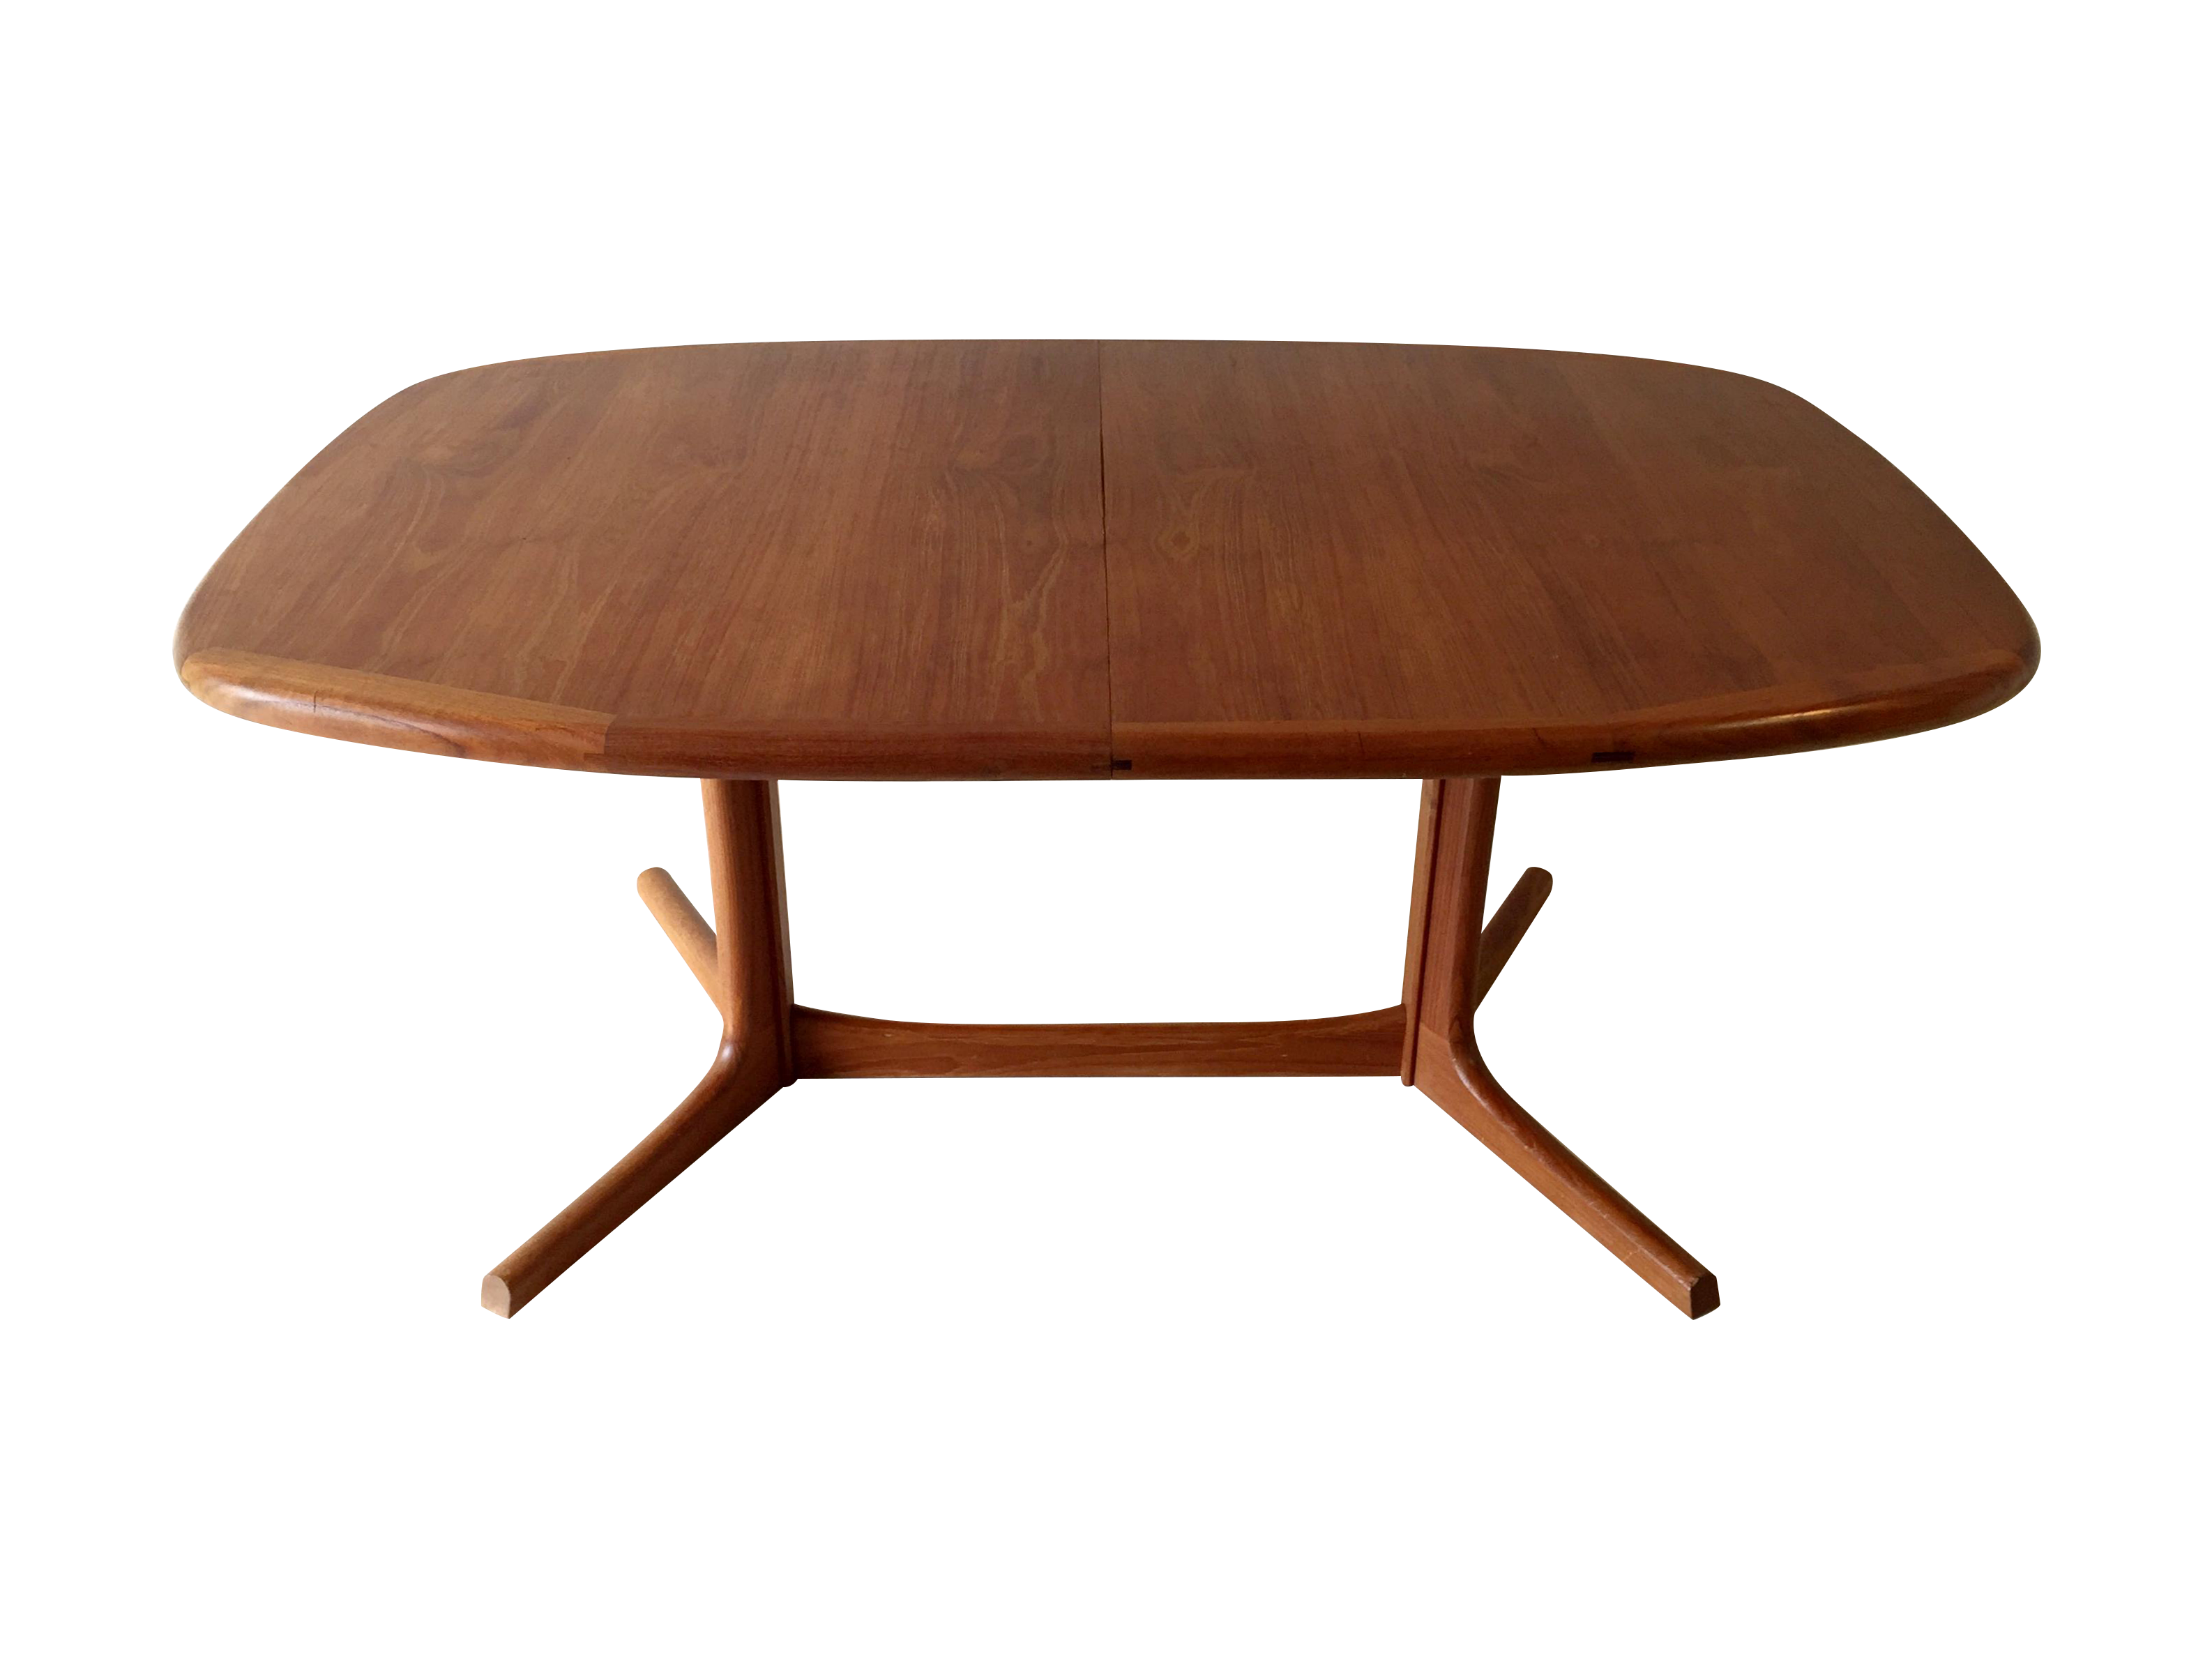 image of vintage danish dyrlund teak dining table - Scandinavian Teak Dining Room Furniture